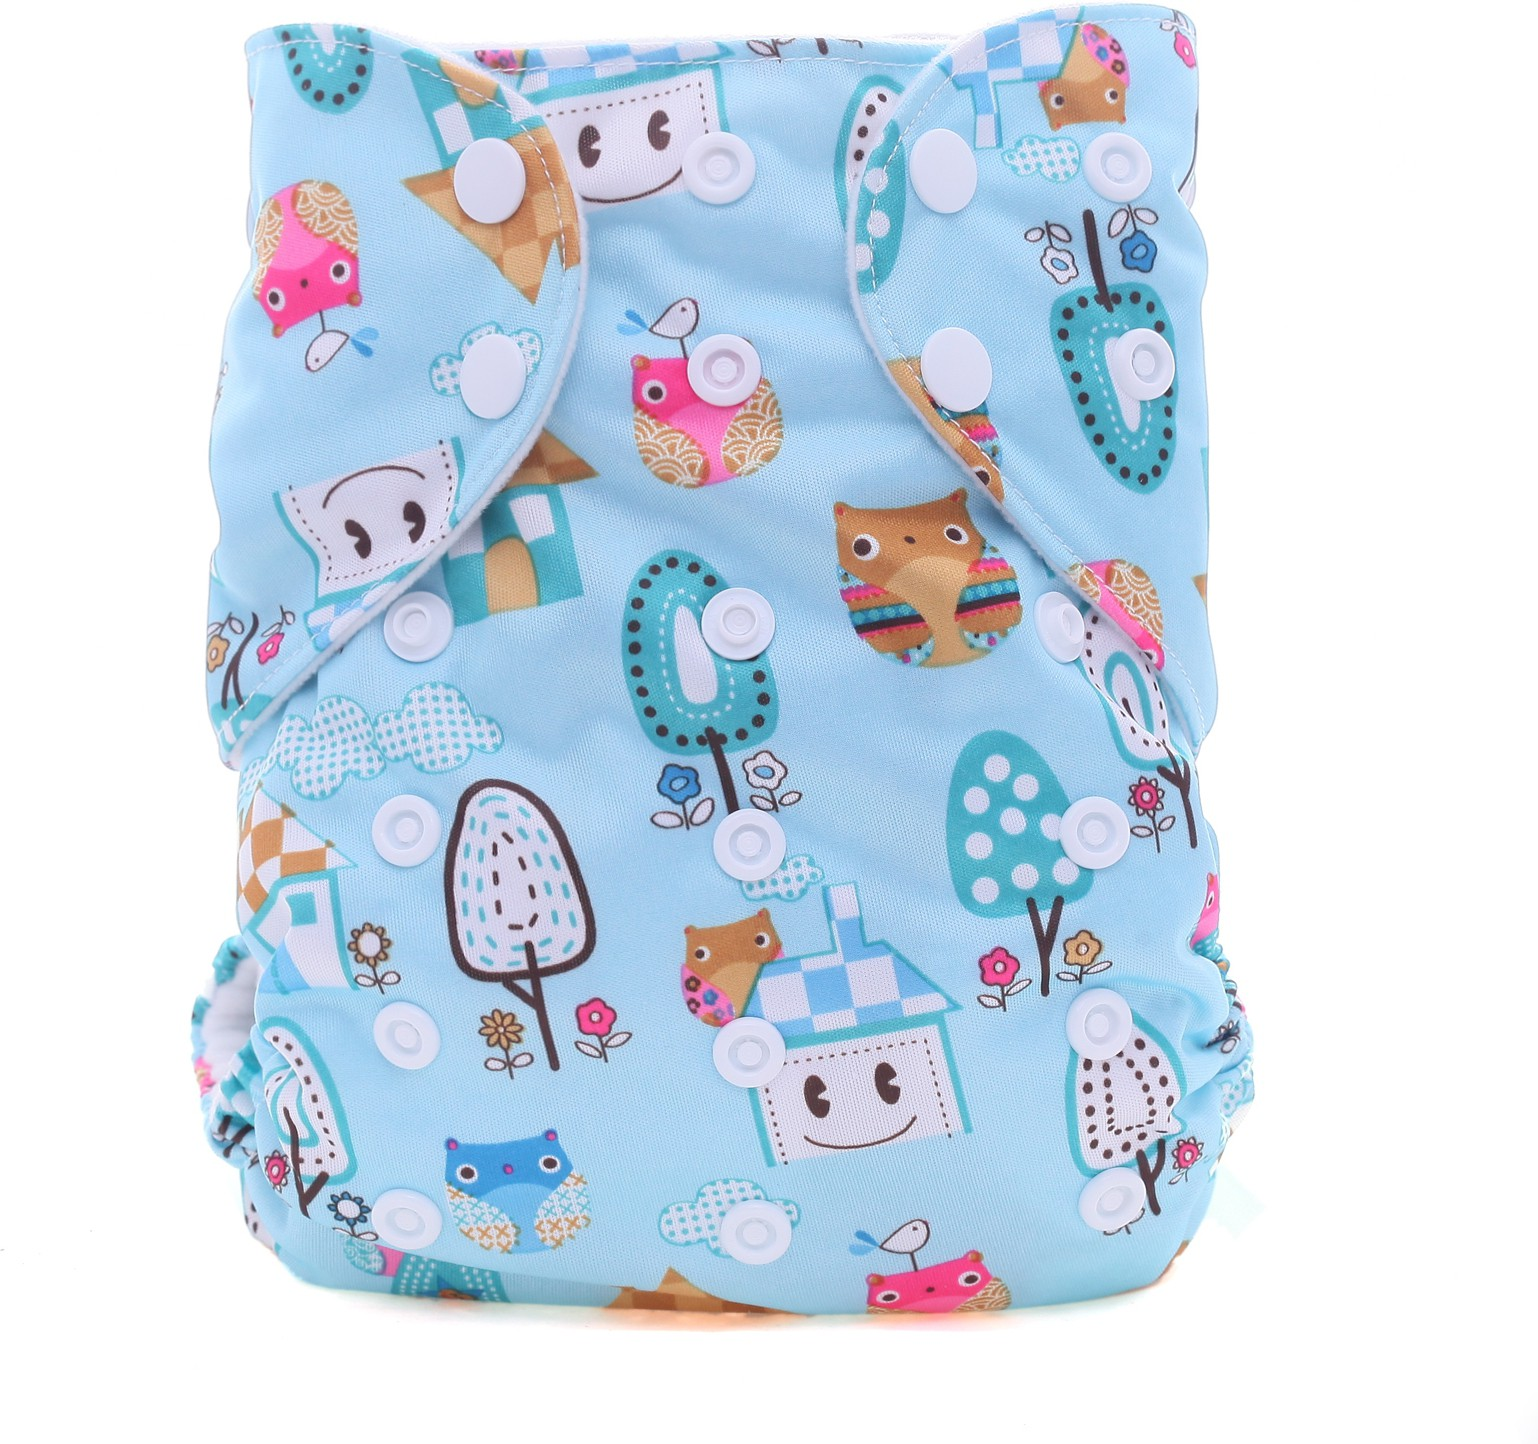 Deals - Delhi - Cloth Diapers <br> Eco Baby, Soft Baby...<br> Category - baby_care<br> Business - Flipkart.com